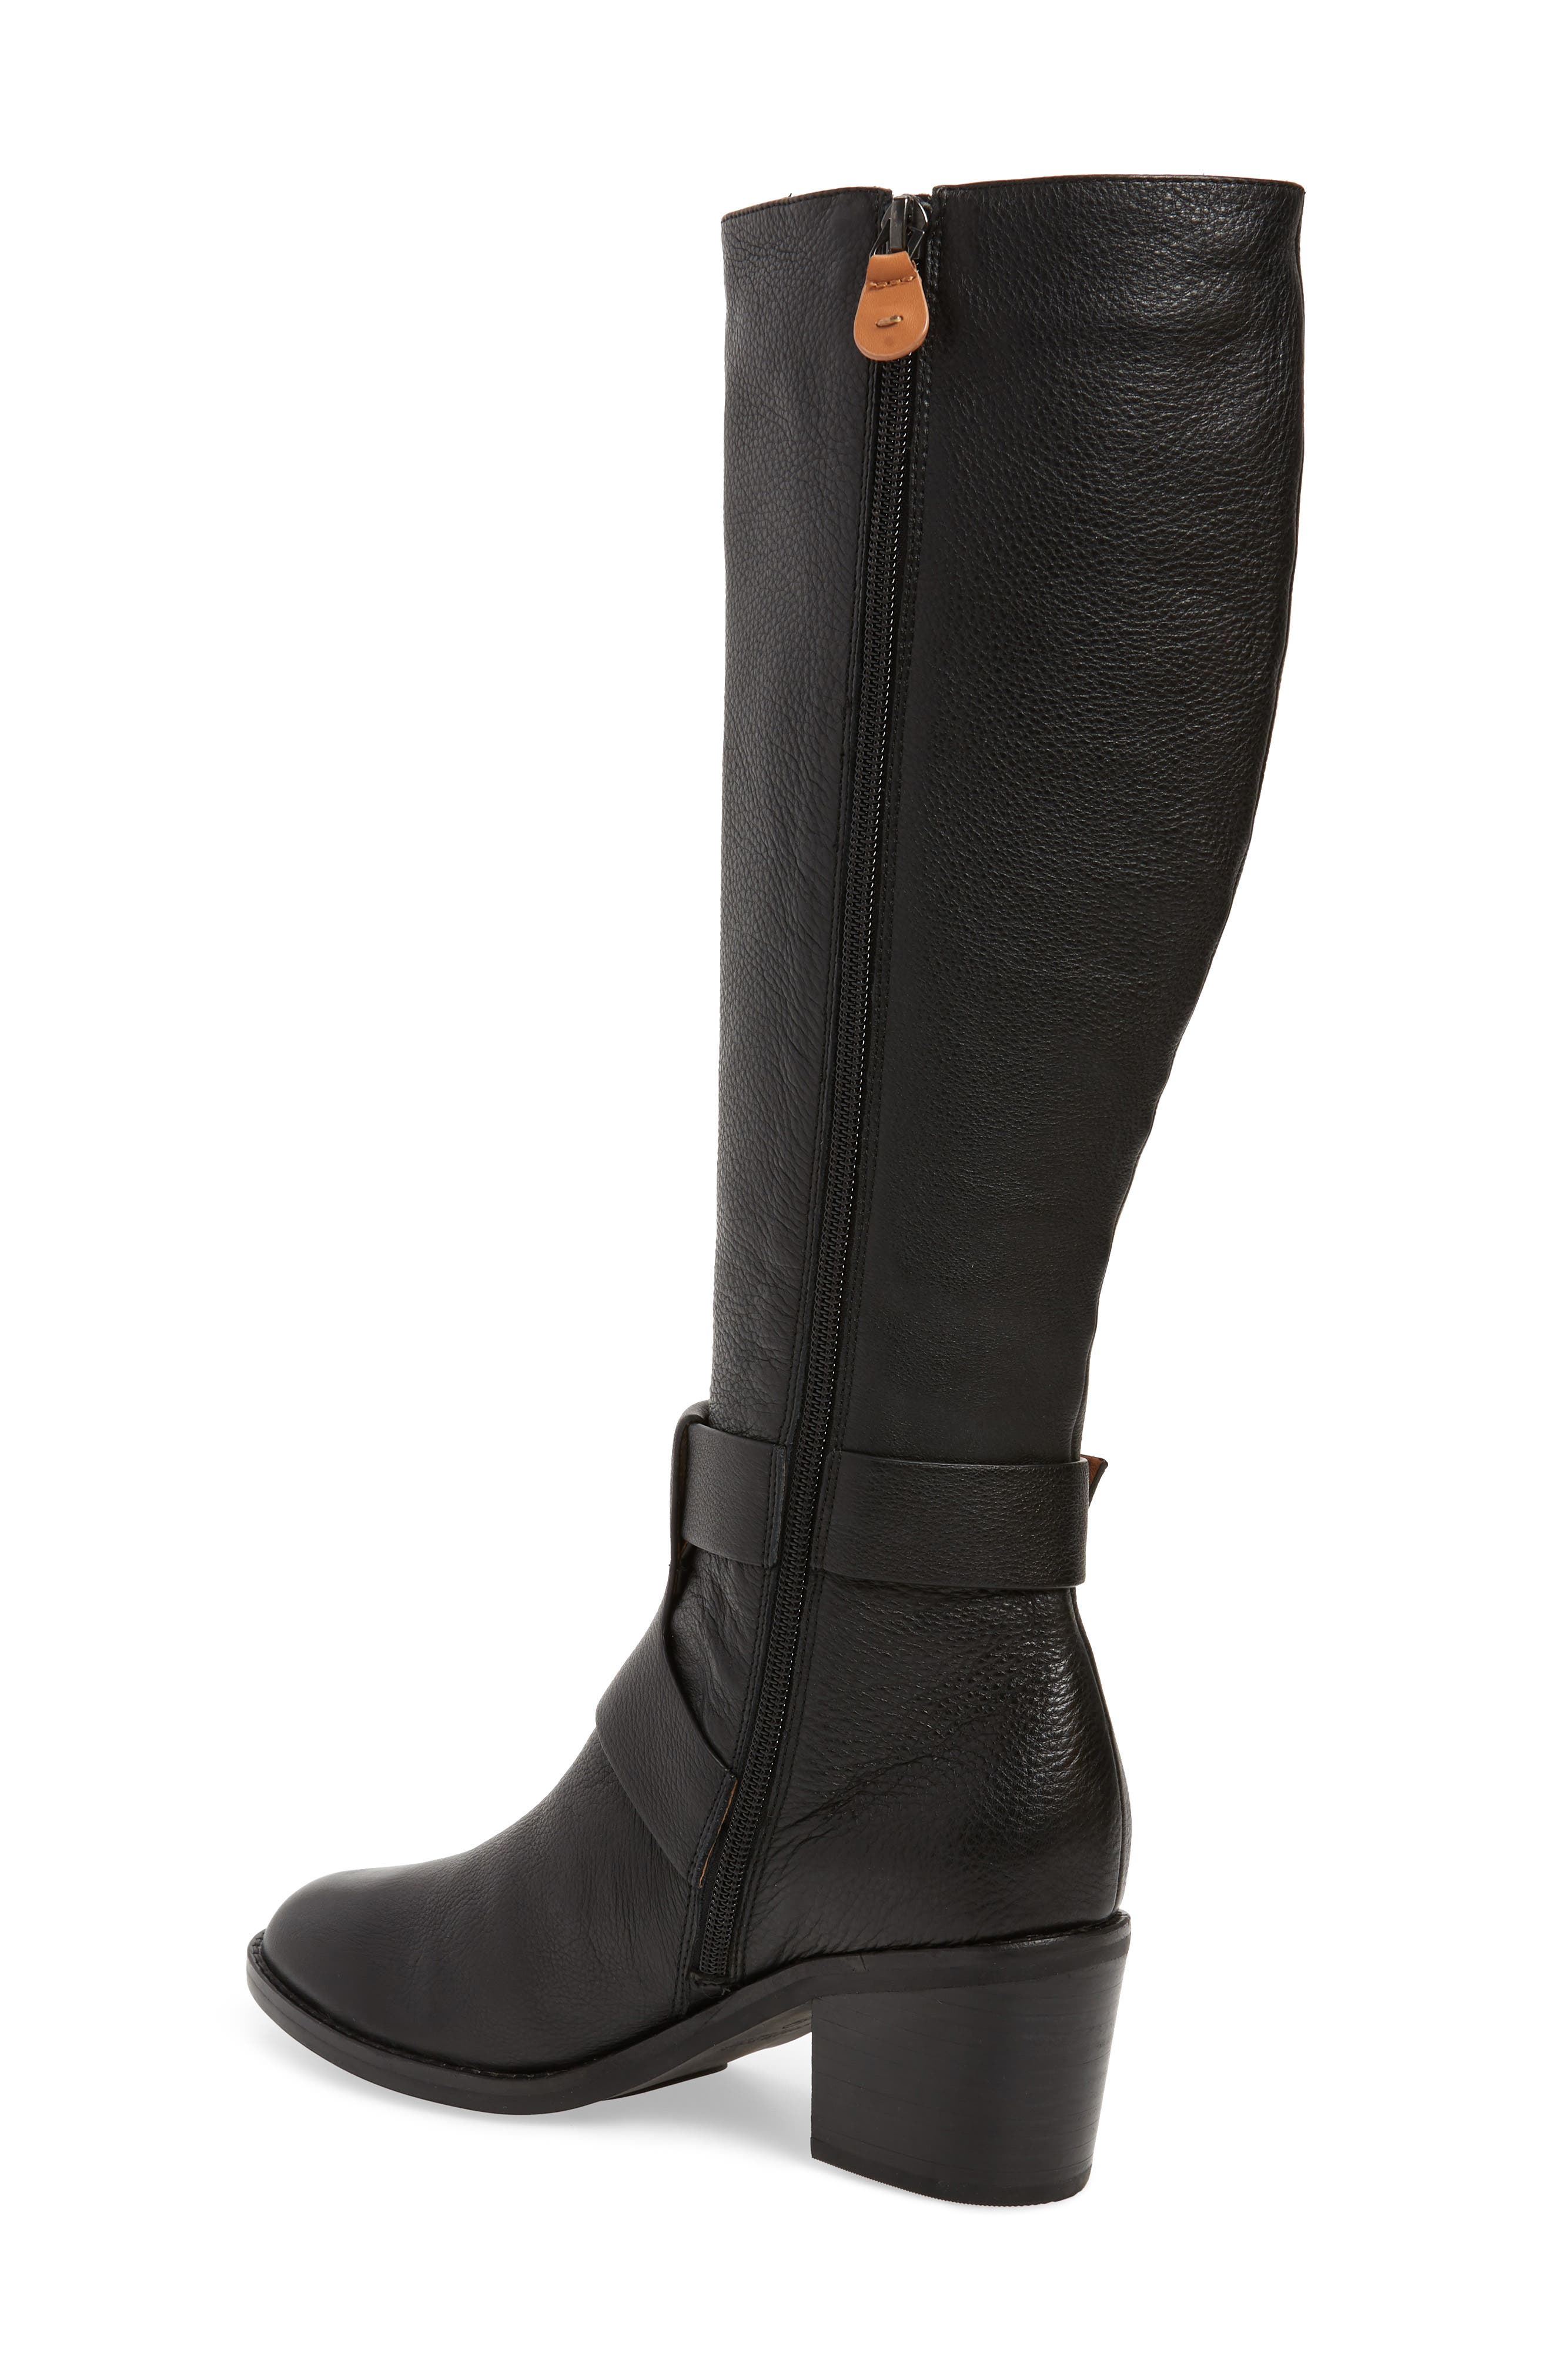 GENTLE SOULS BY KENNETH COLE, Verona Knee-High Riding Boot, Alternate thumbnail 2, color, 001